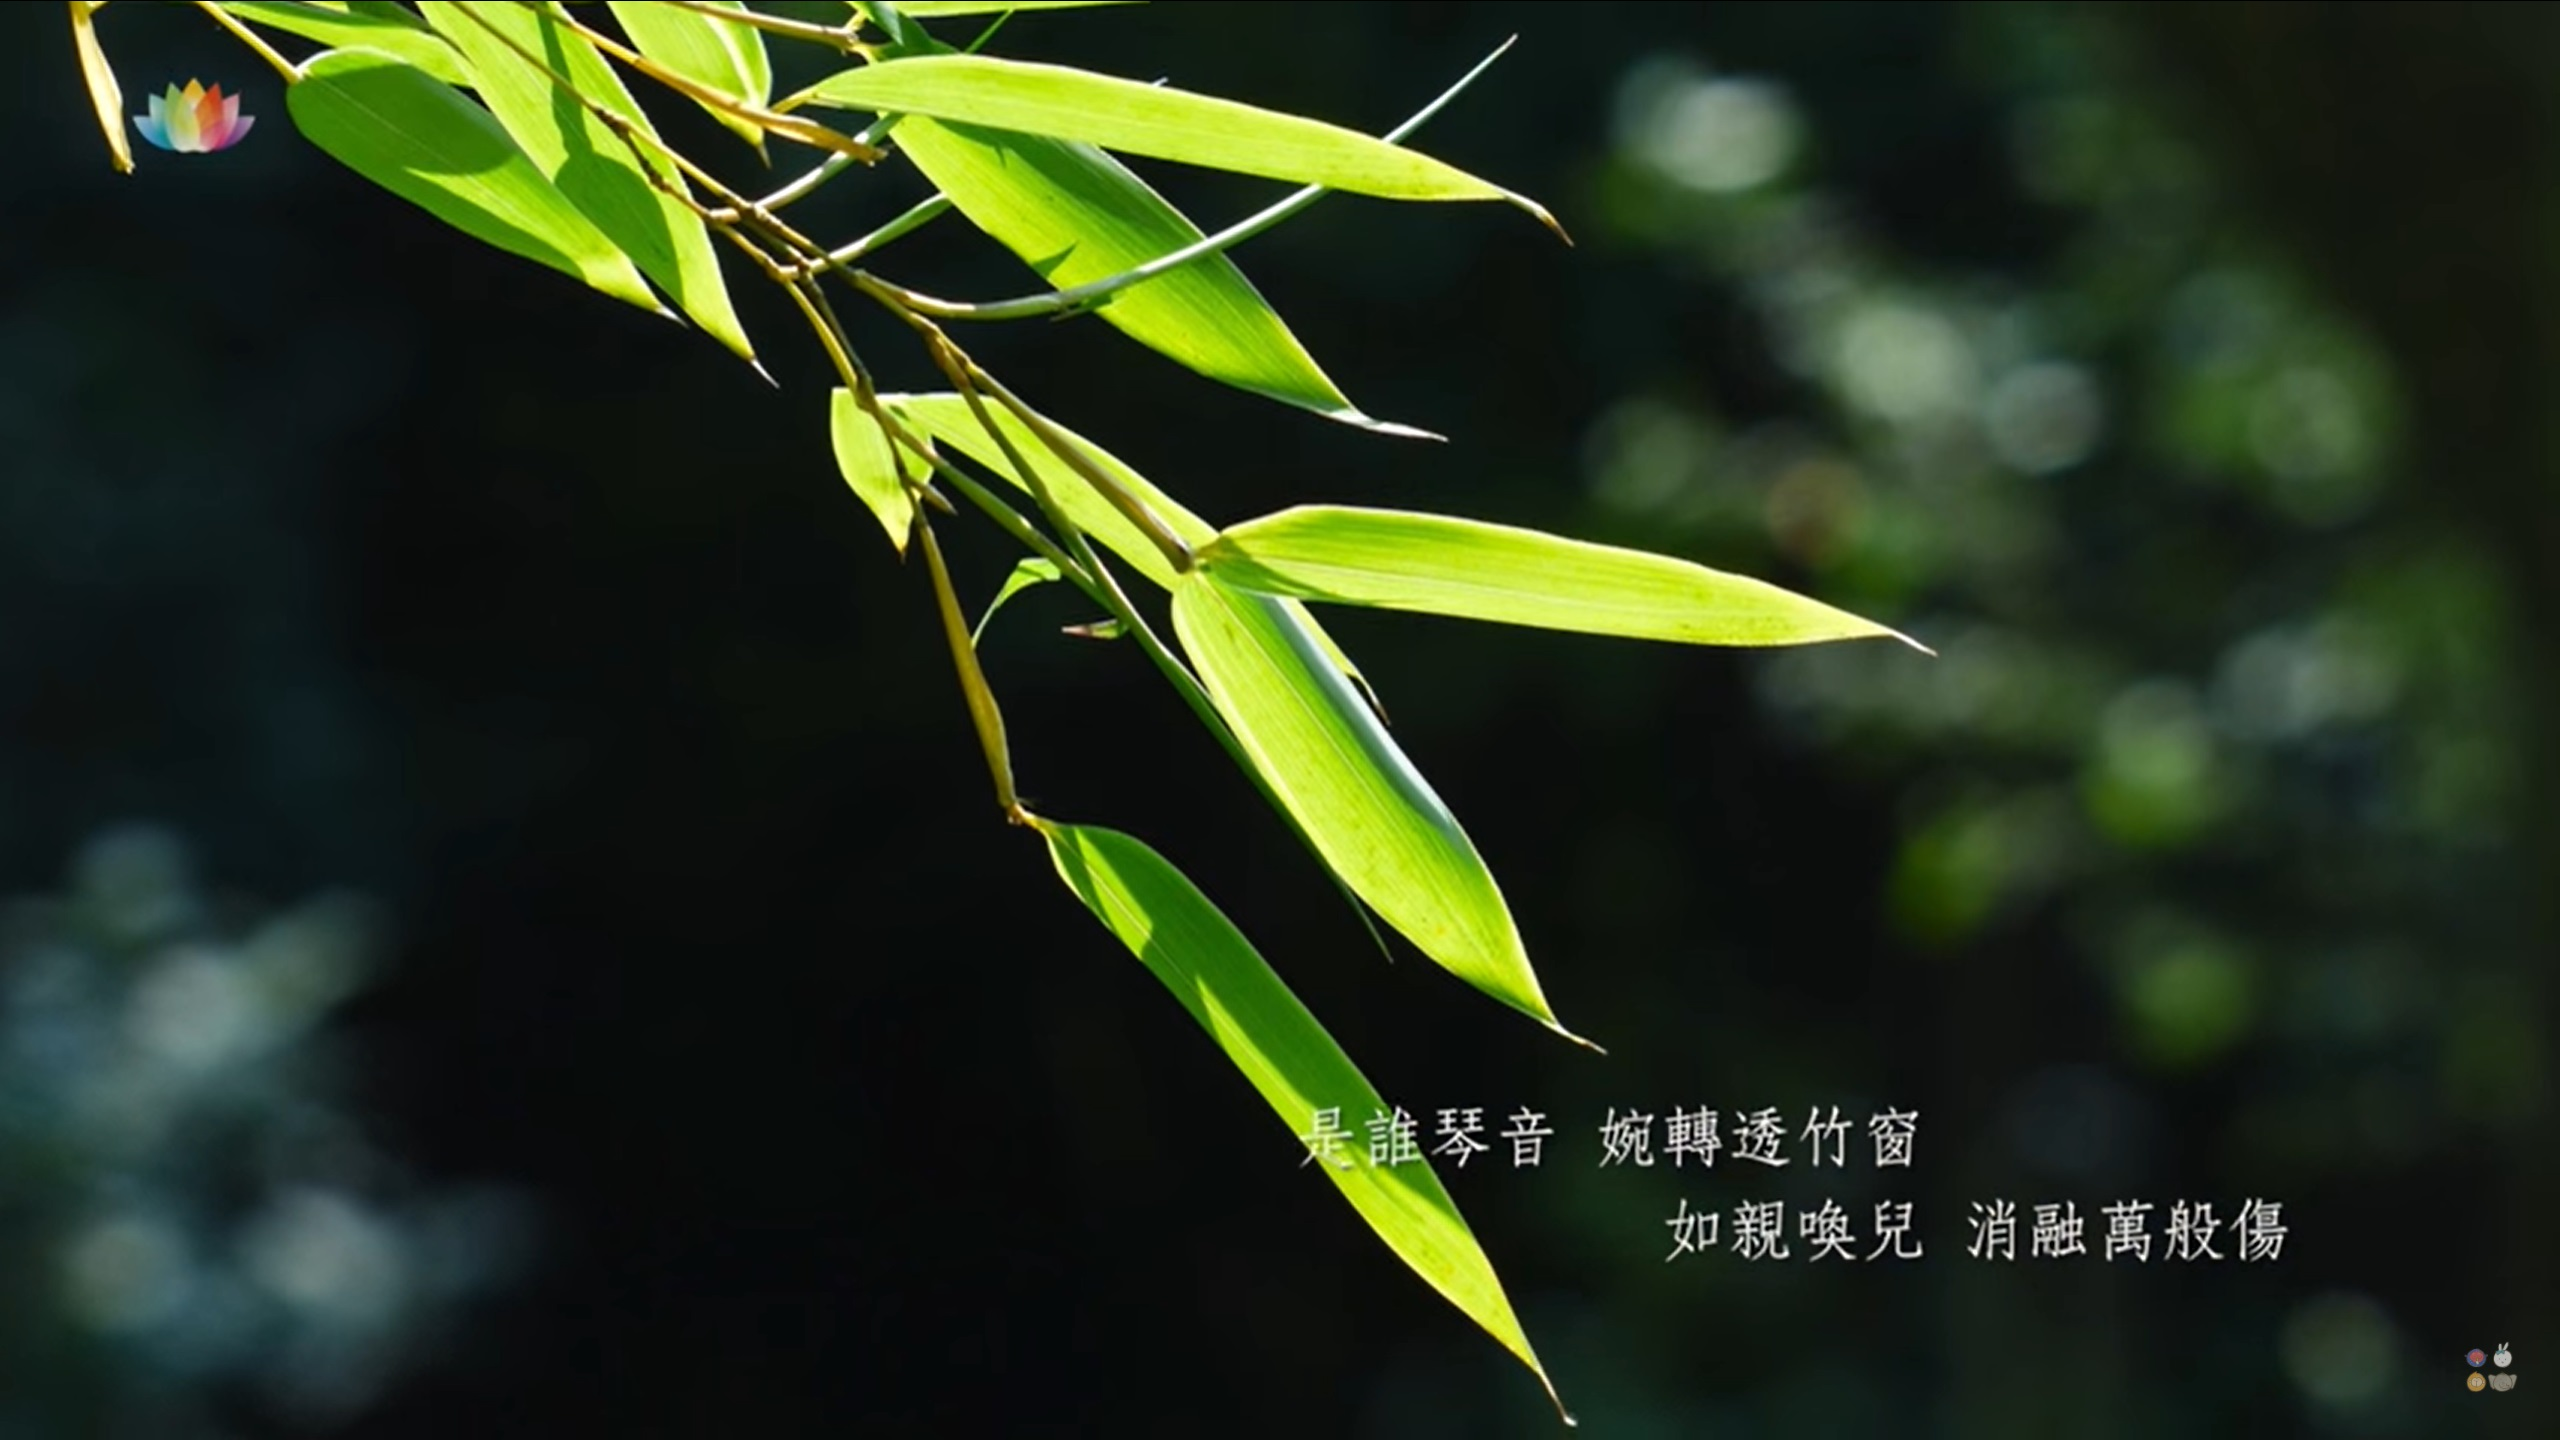 HEARTSTRINGS OF PRAISE:《在這個時候:祝福您》IN THIS MOMENT: A GIFT OF MELODY 21.10.2020